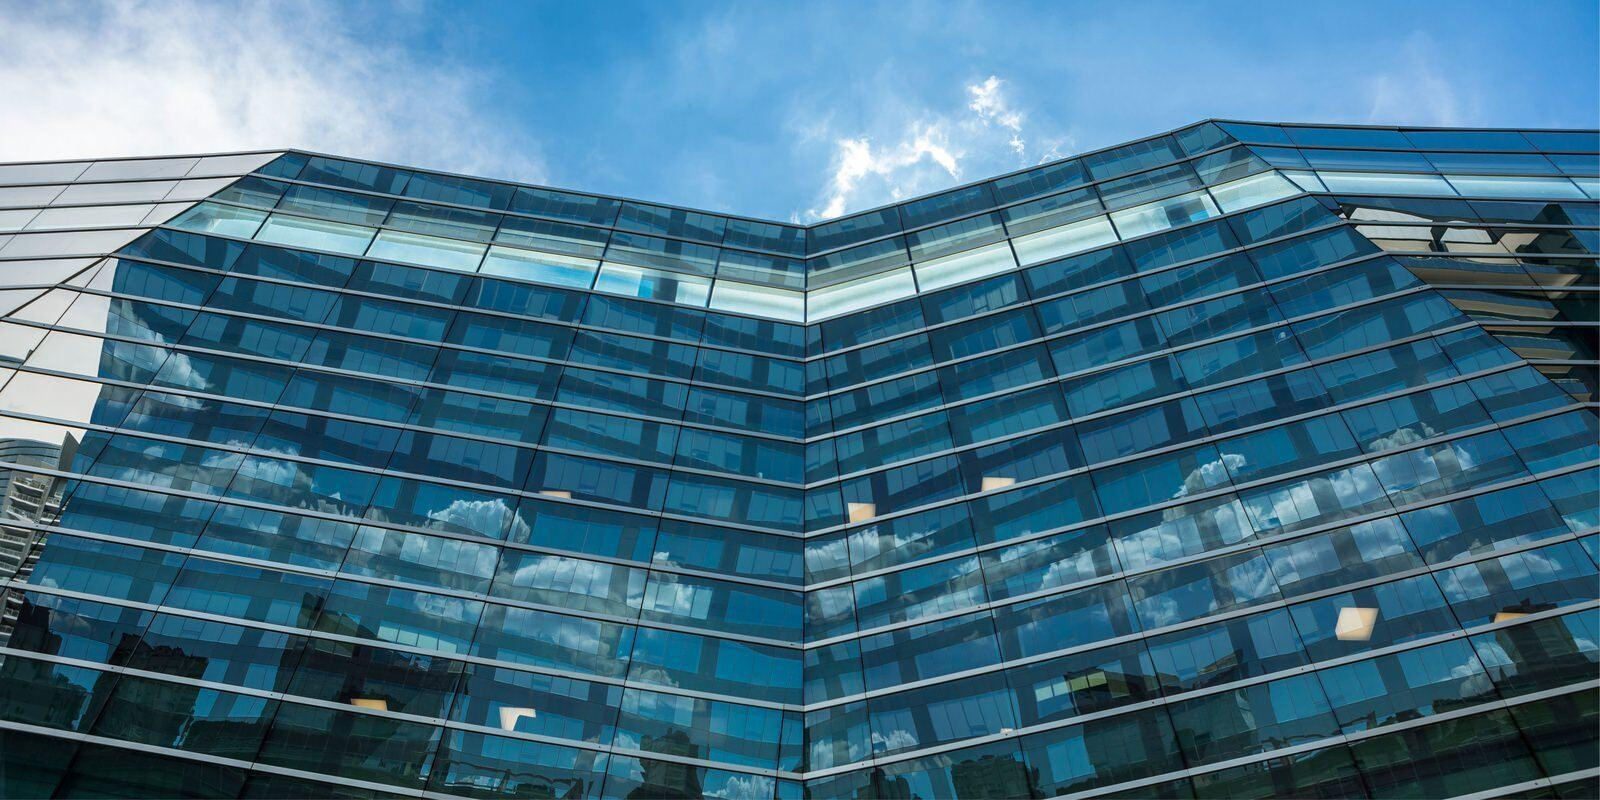 Upward view of a large building that is covered with glass windows with a blue sky above.